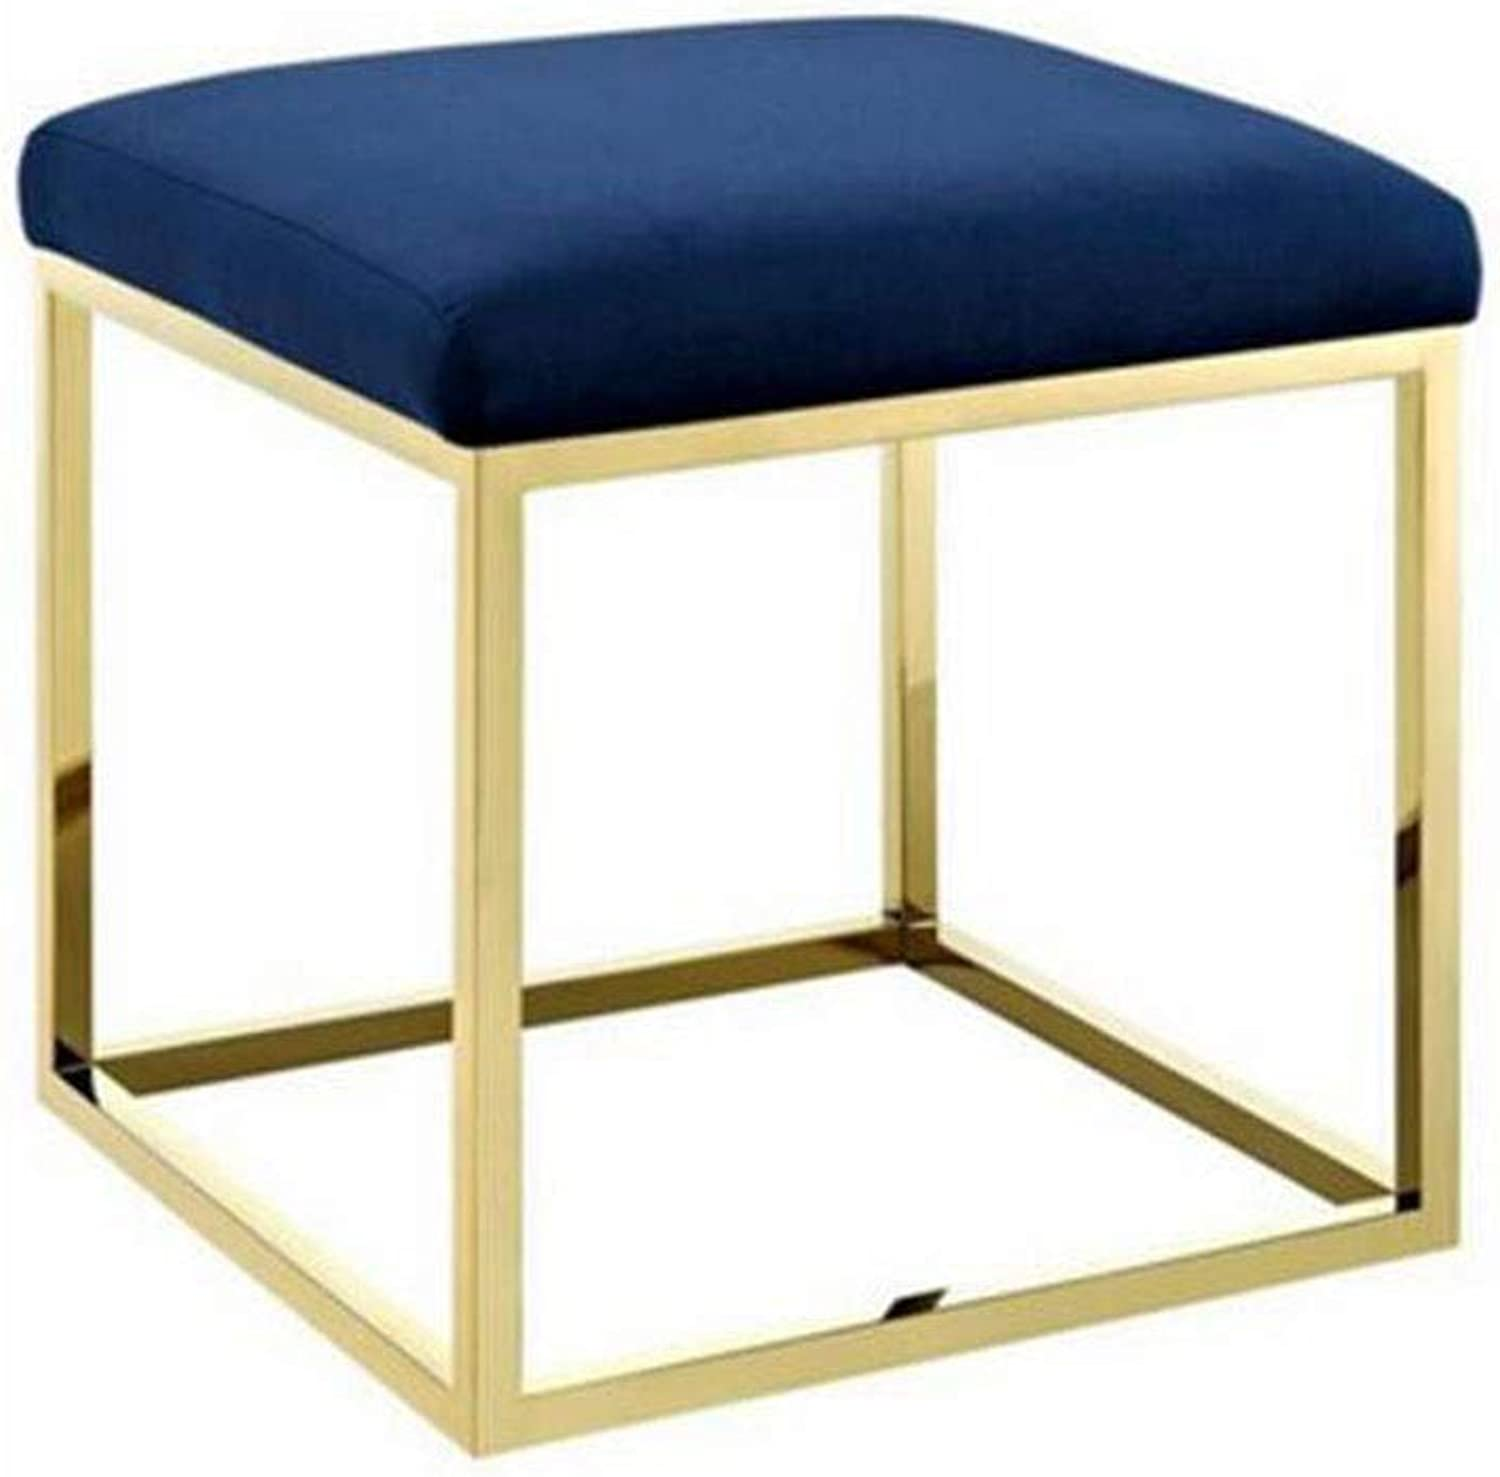 ECSD Contemporary Stainless Steel Vanity Stool Small Square Stool Change shoes Bench Living Room Single Sofa Bench (color   Dark bluee)